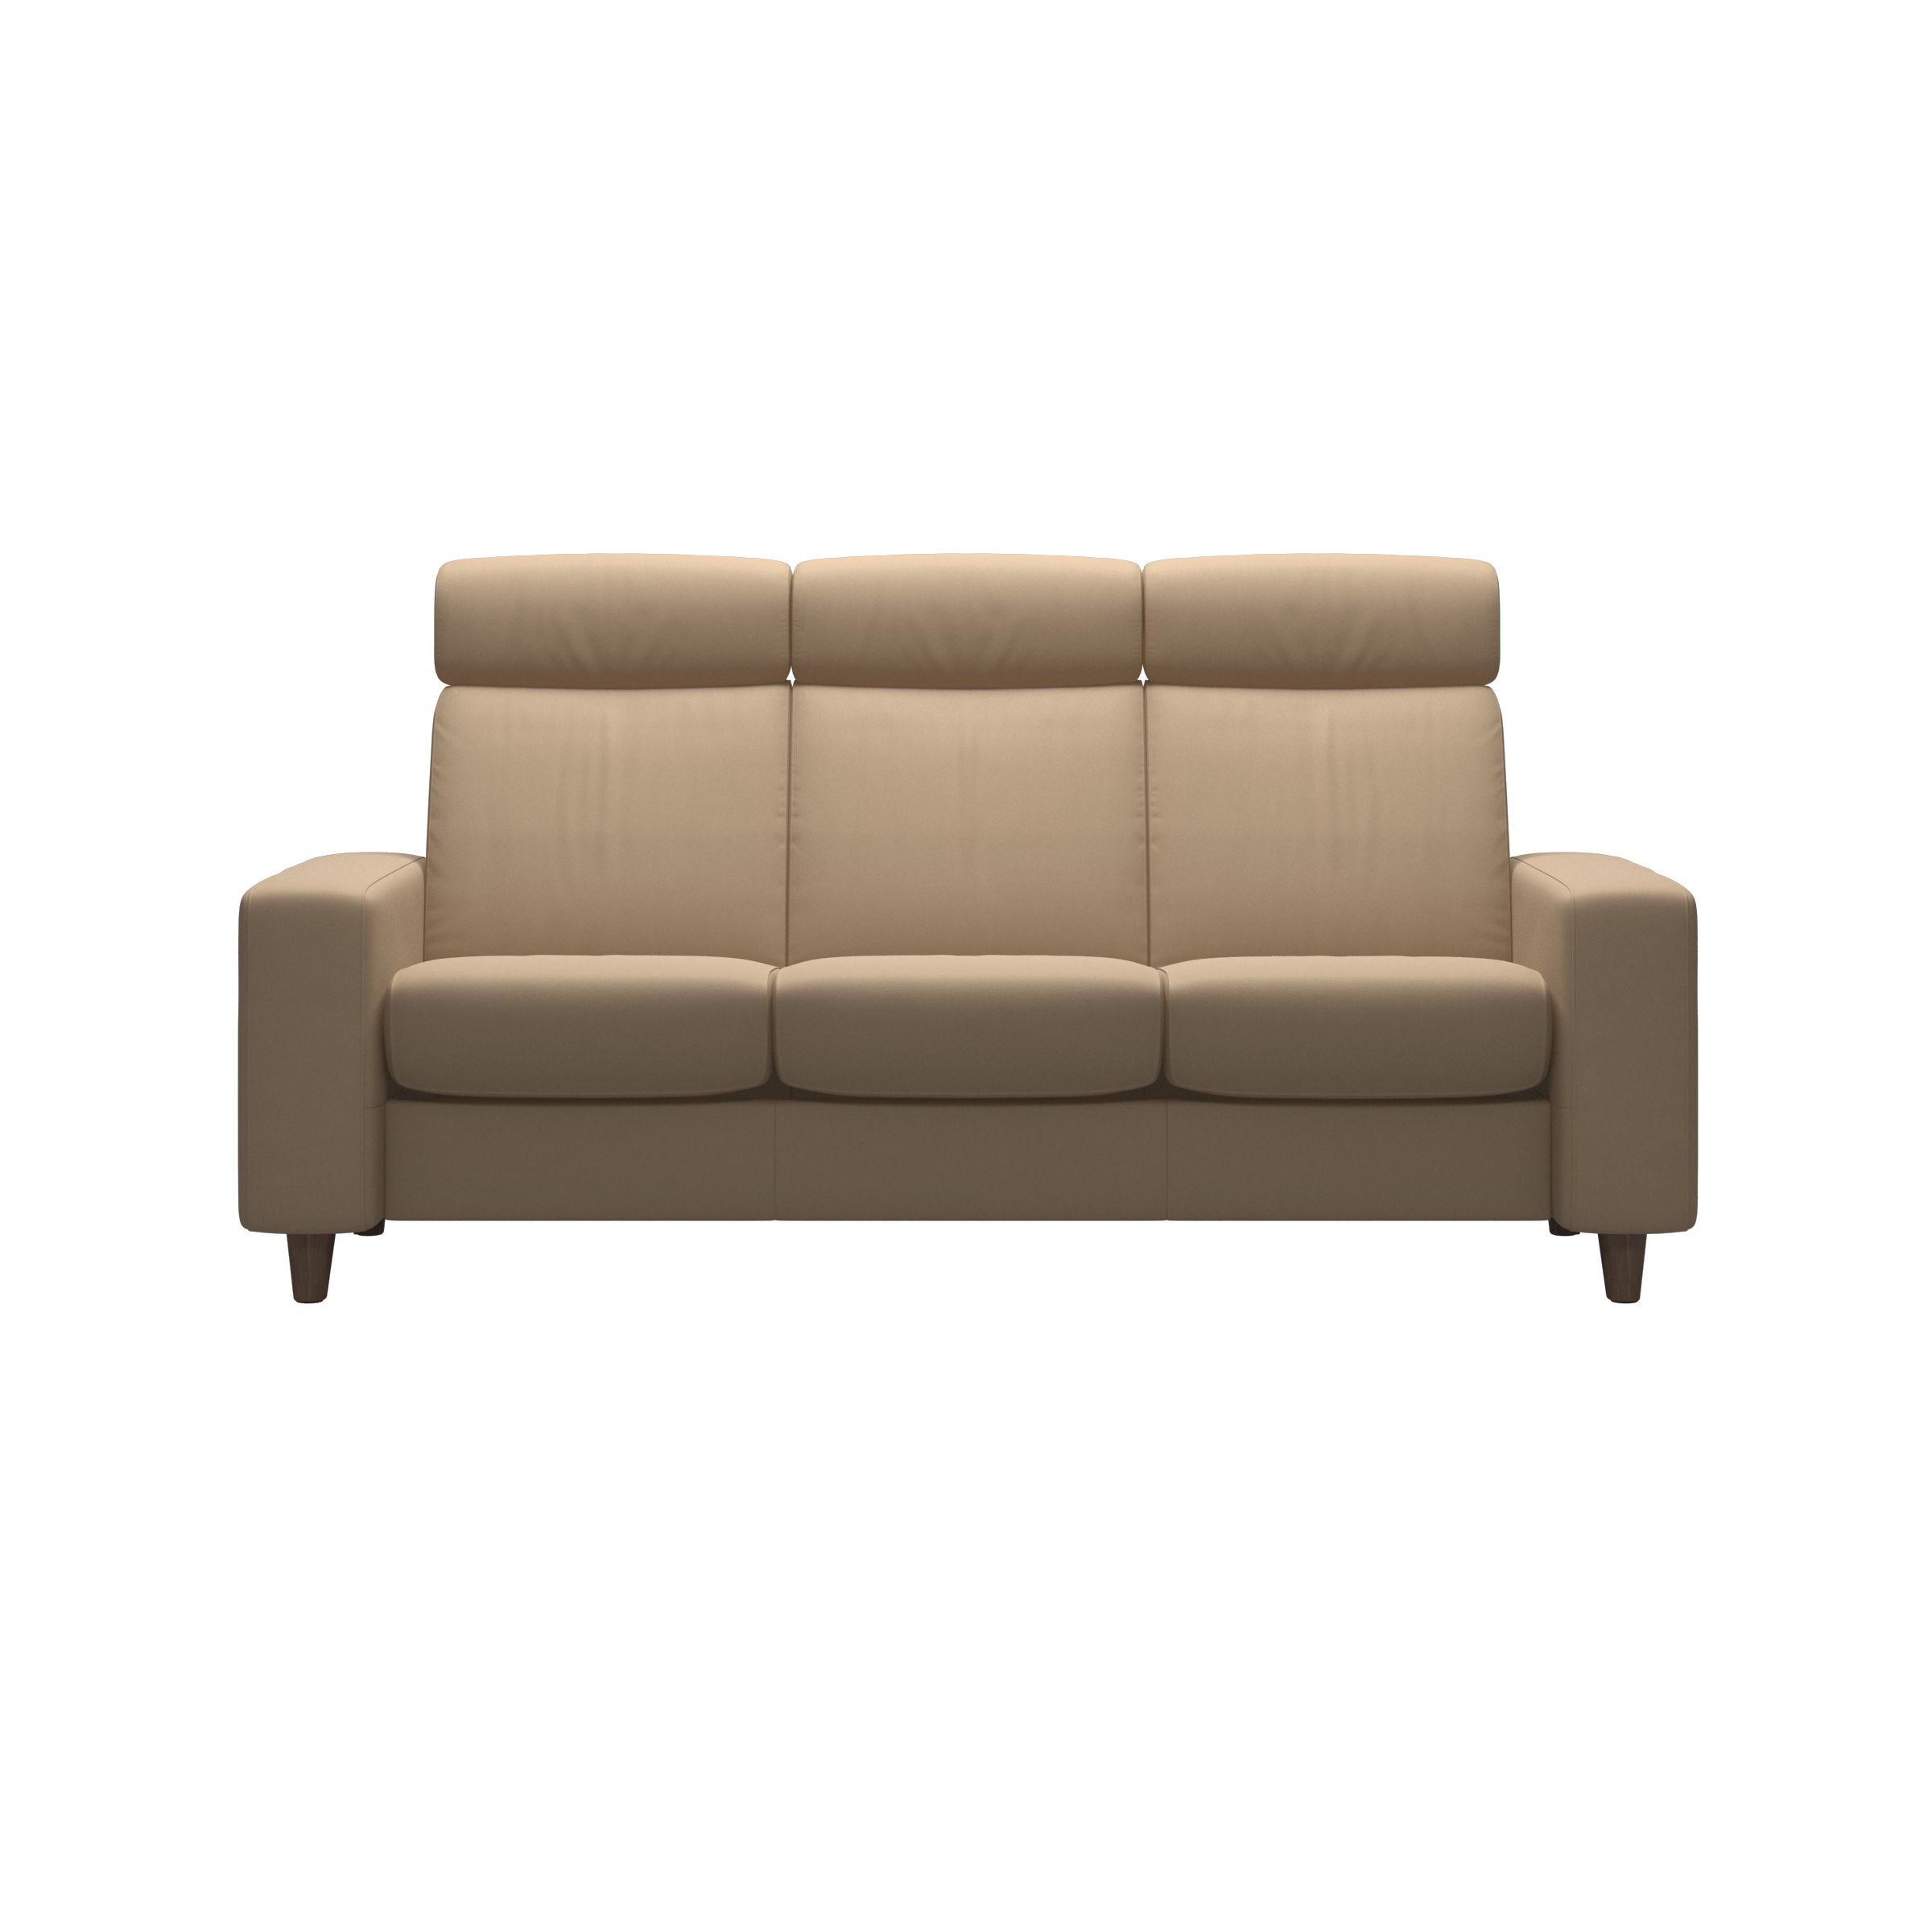 Full Size of Stressless Sofa Furniture Uk Leather Couch Stella 2 Seater Review Wave Sale Second Hand For Ekornes Ebay Used Australia Cost Arion 19 A20 Sofas Ewald Schillig Sofa Stressless Sofa